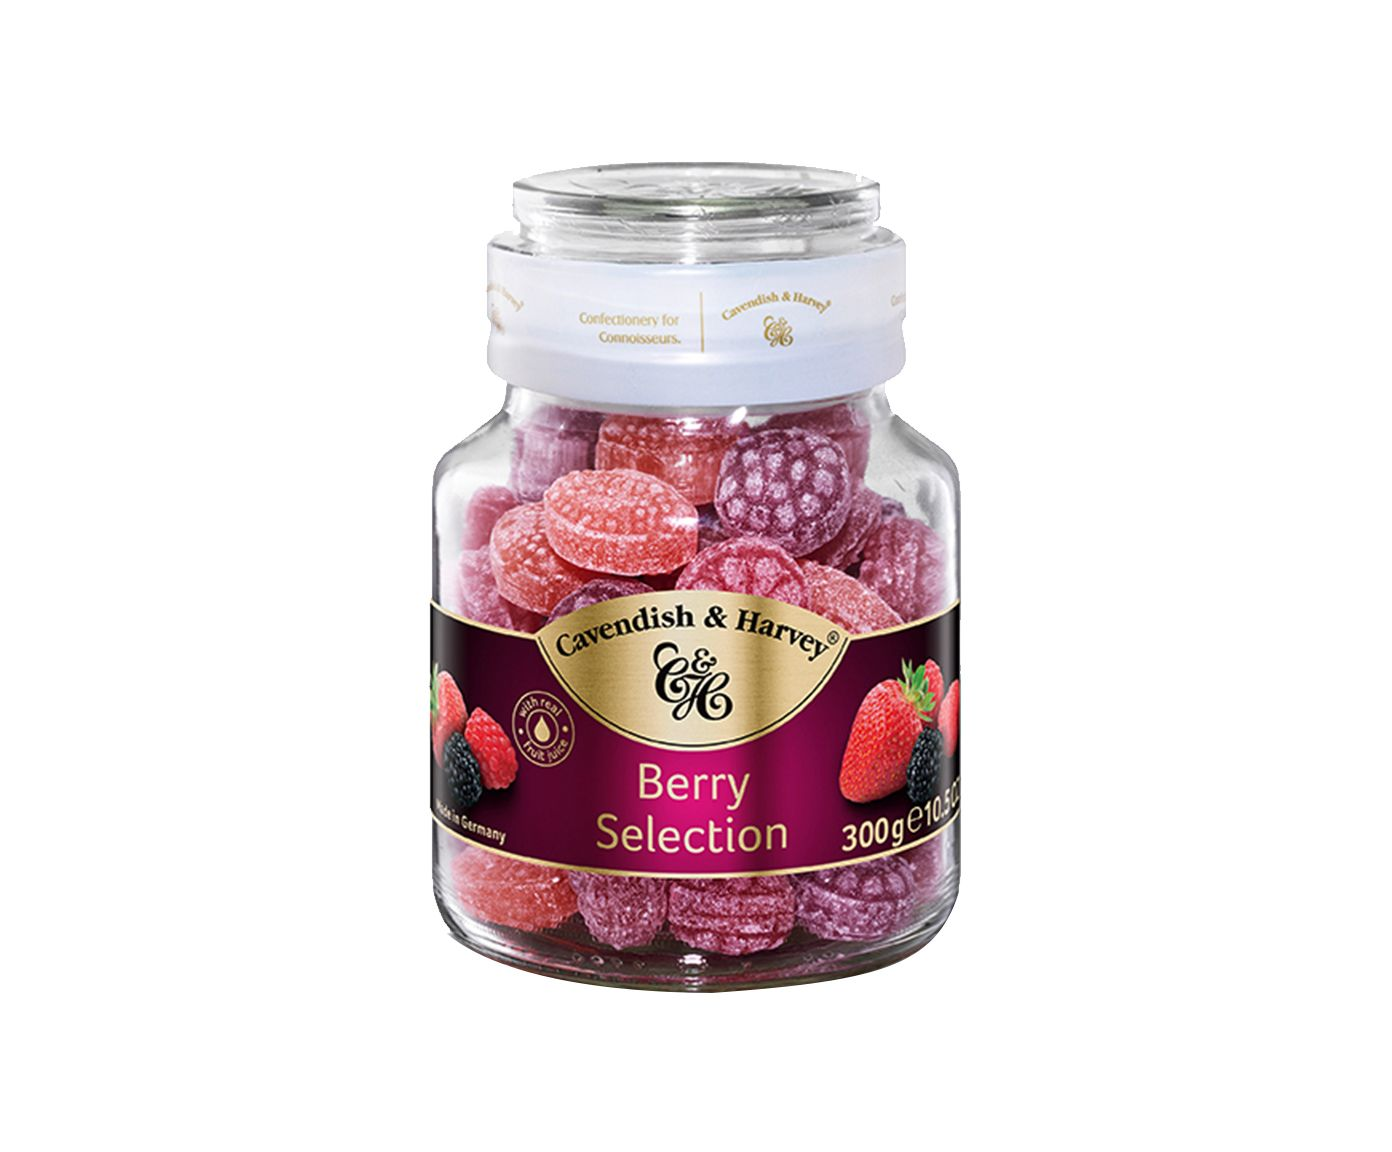 Bala Alemã Cavendish & Harvey Berry Selection - 300G | Westwing.com.br